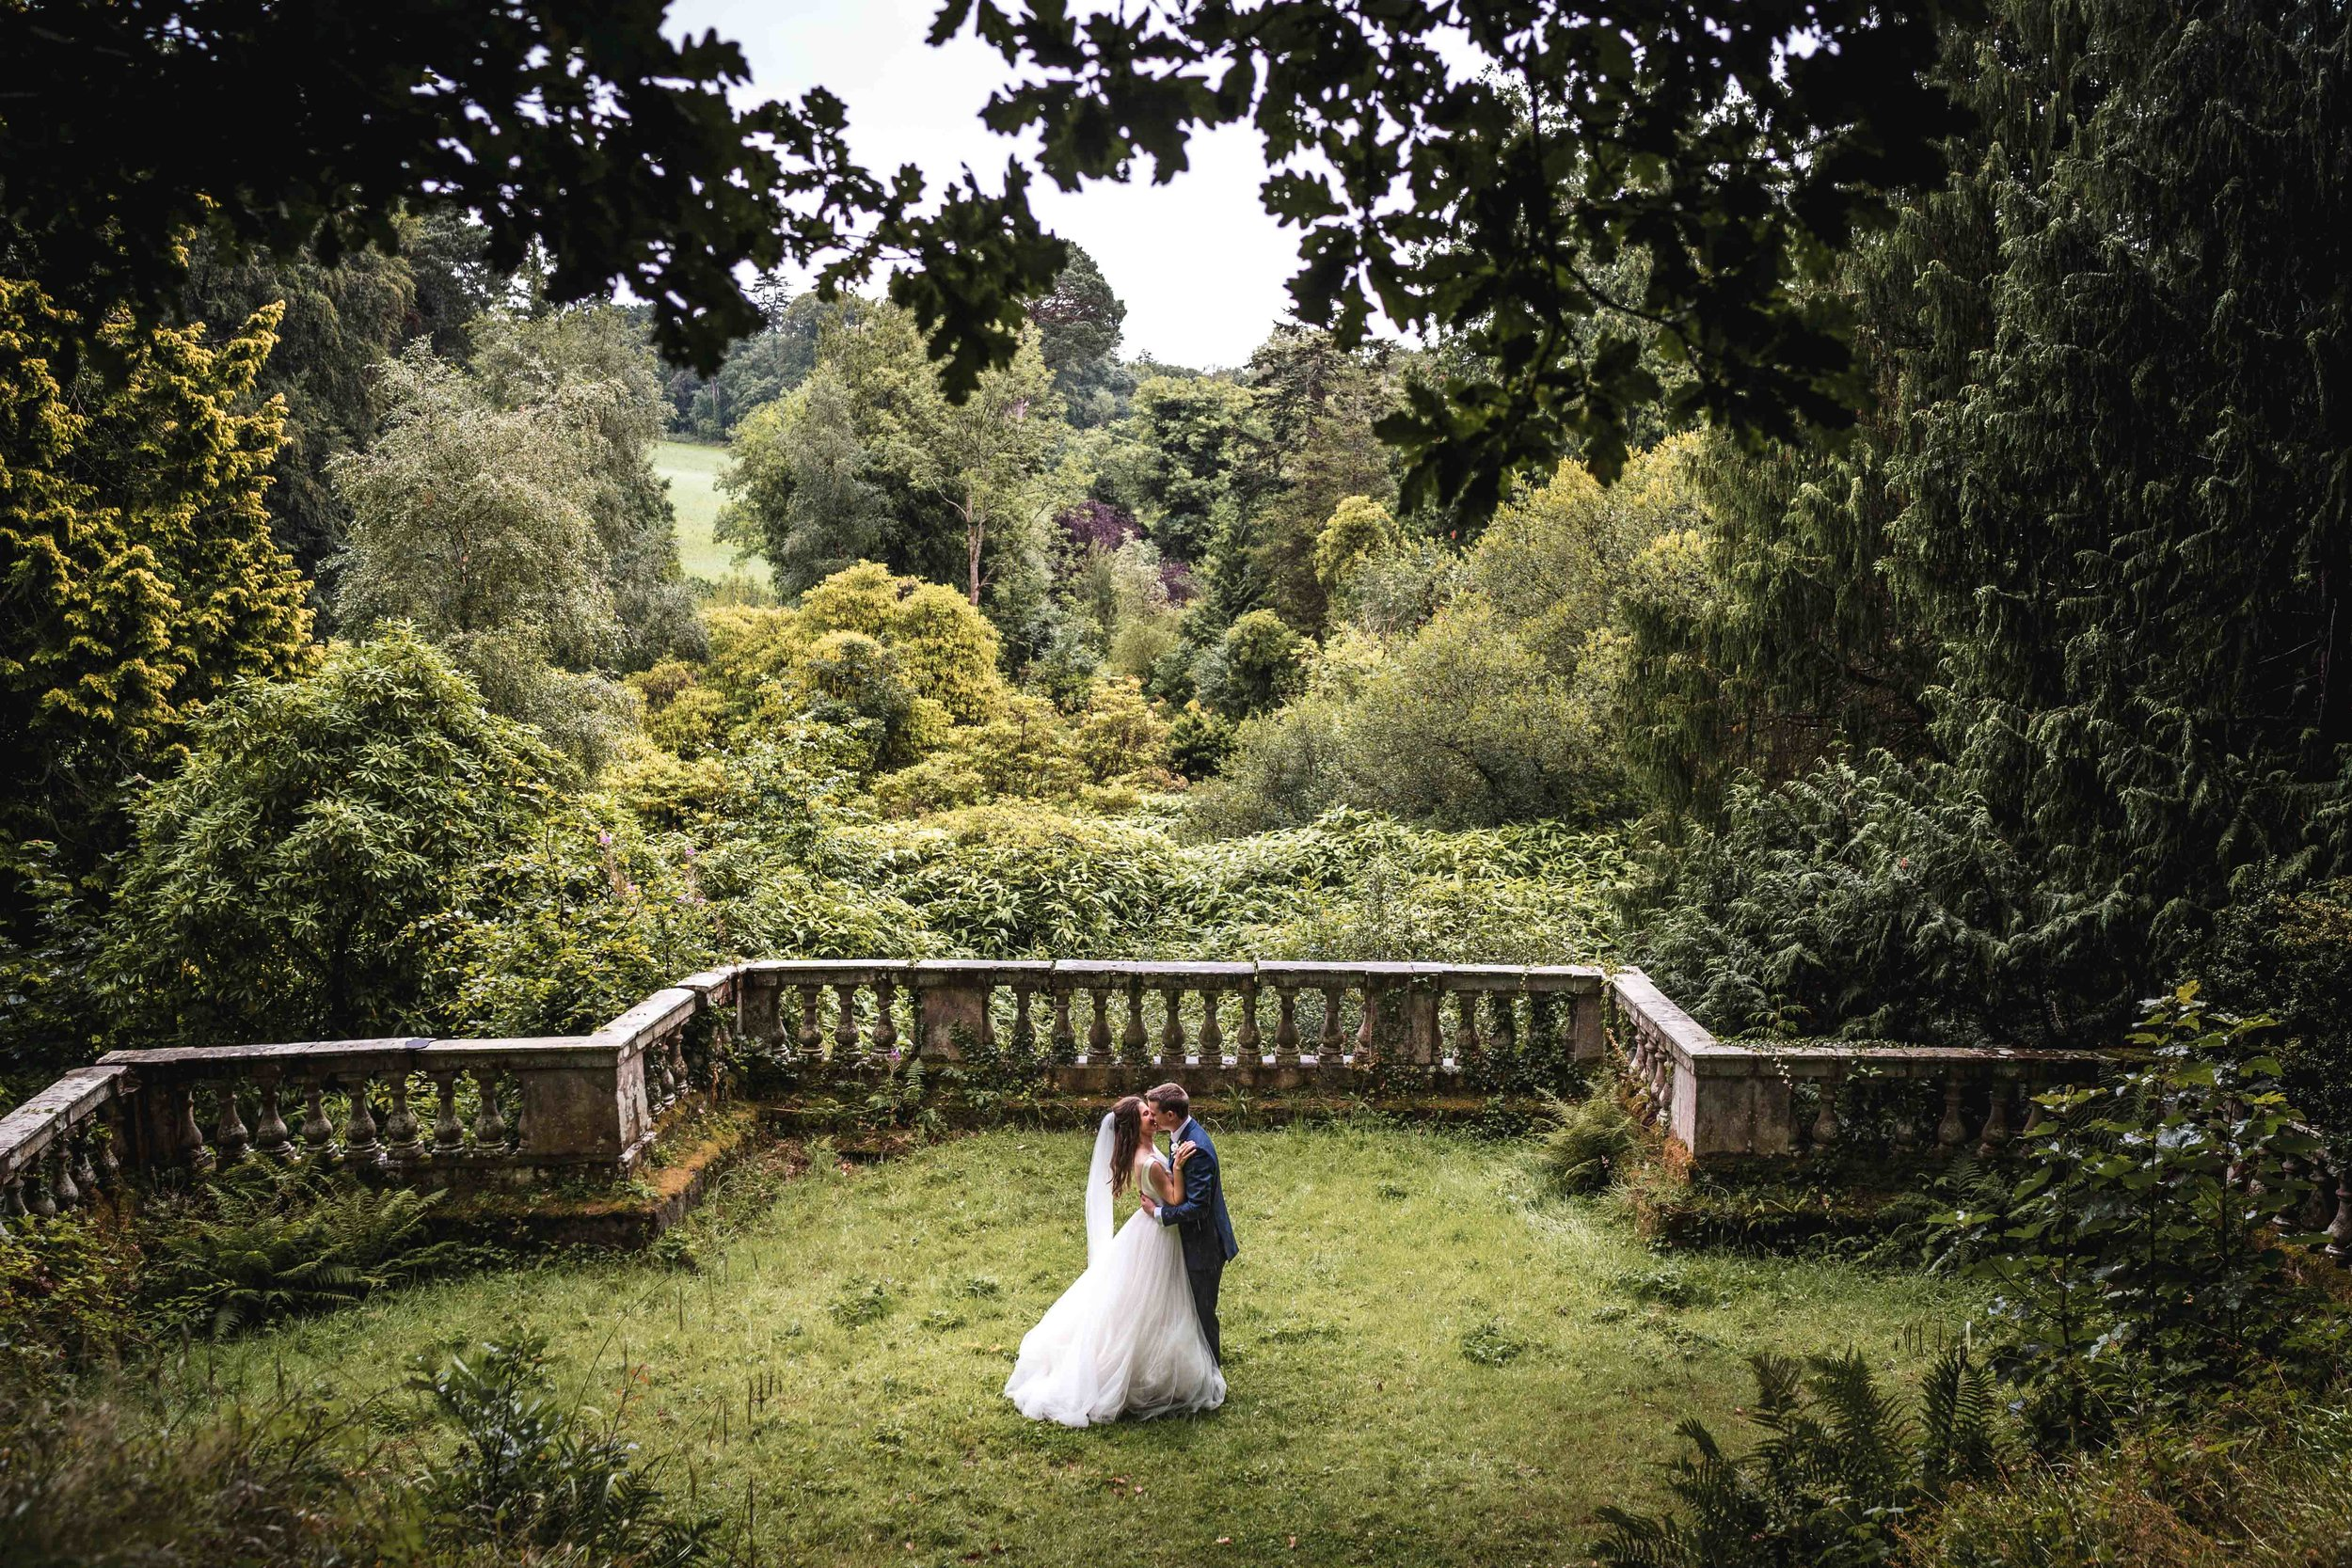 Bride and Groom Embrace in Woodland Surroundings of Drenagh House, Ireland